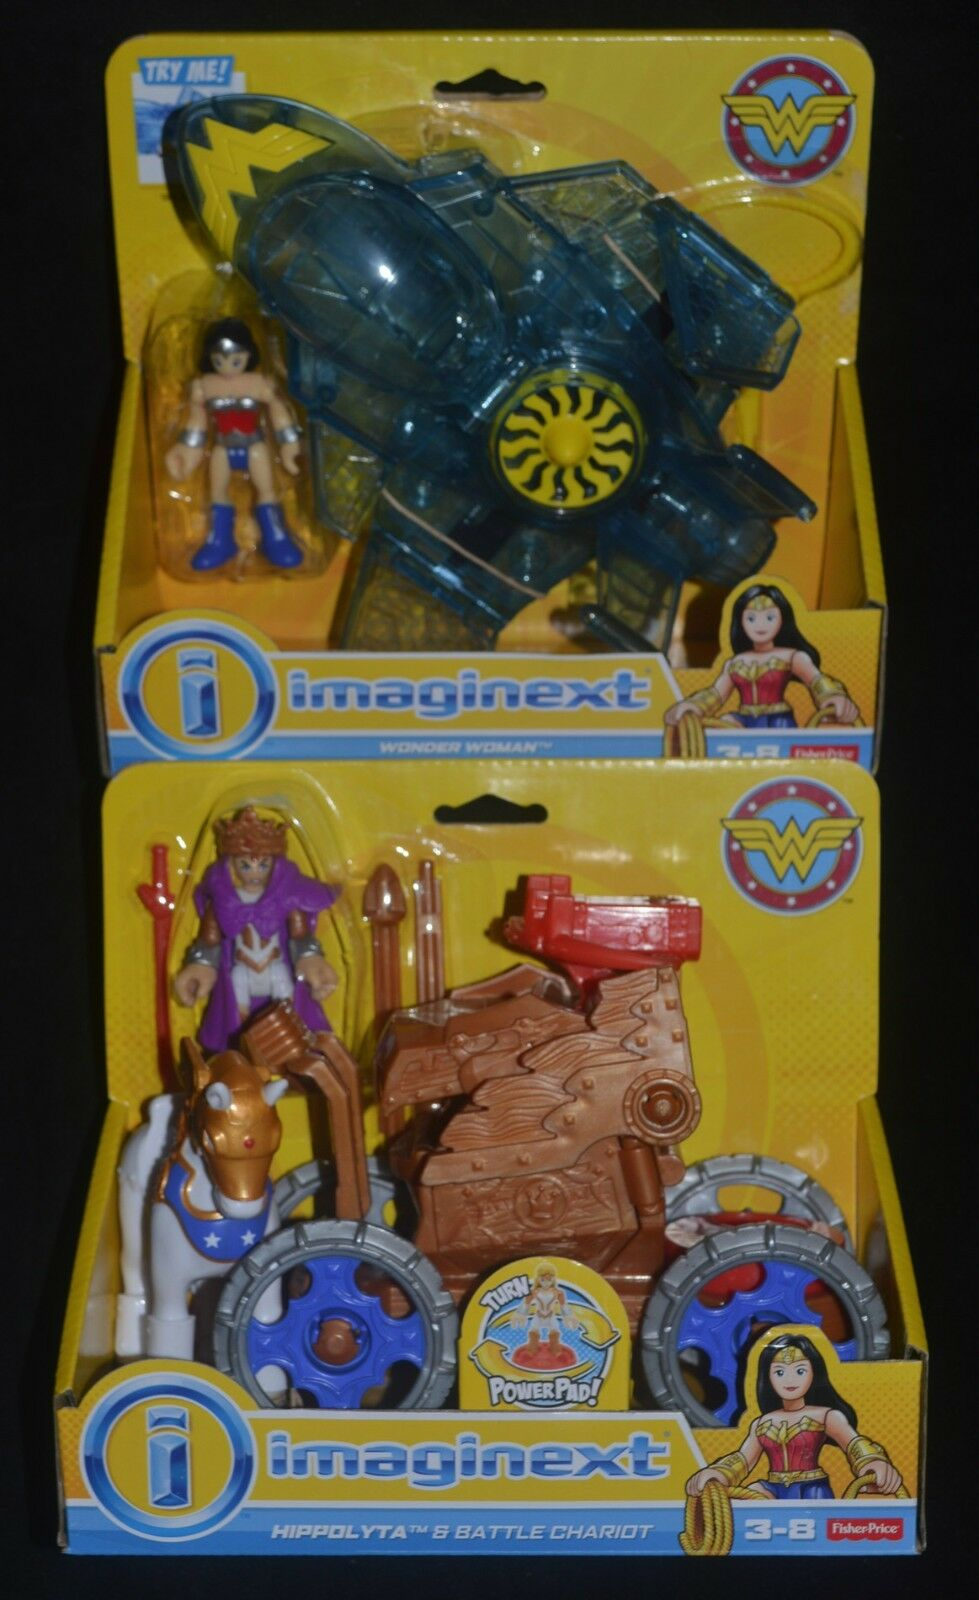 WONDER WOMAN & INVISIBLE JET and HIPPOLYTA & BATTLE CHARIOT DC Imaginext New